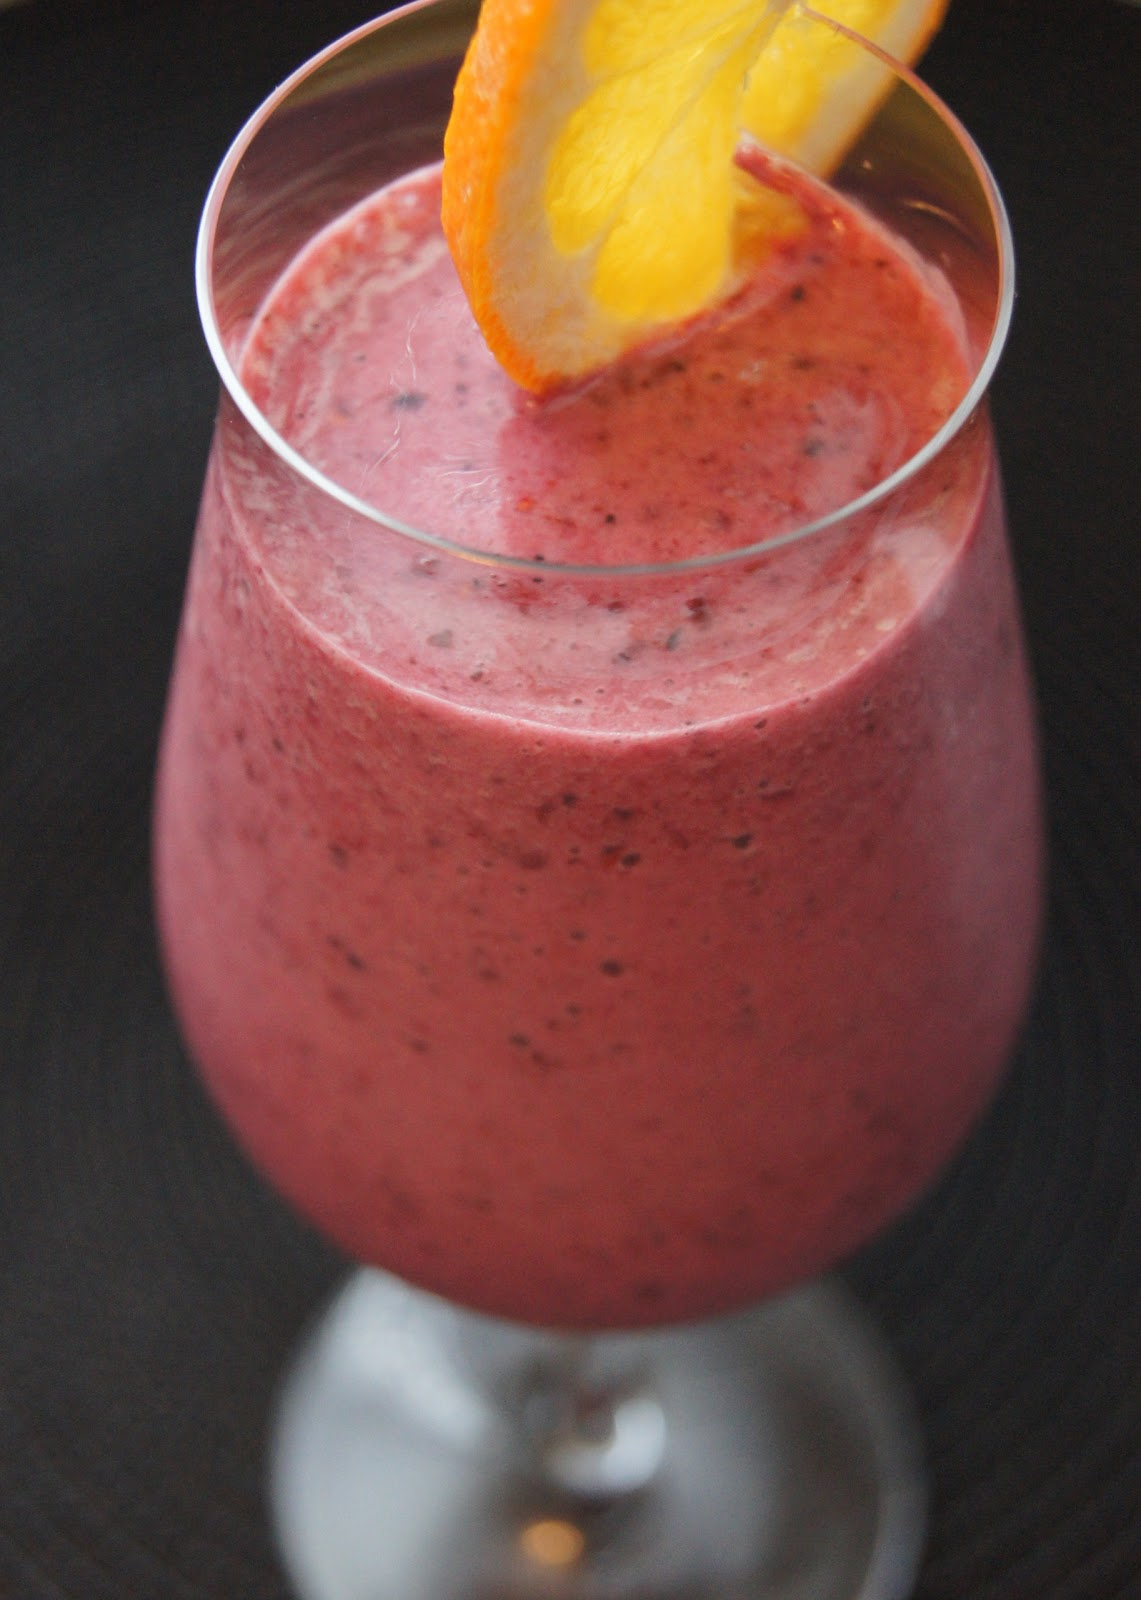 Eating Well, while Gluten Free: Mixed Berry Protein Smoothie